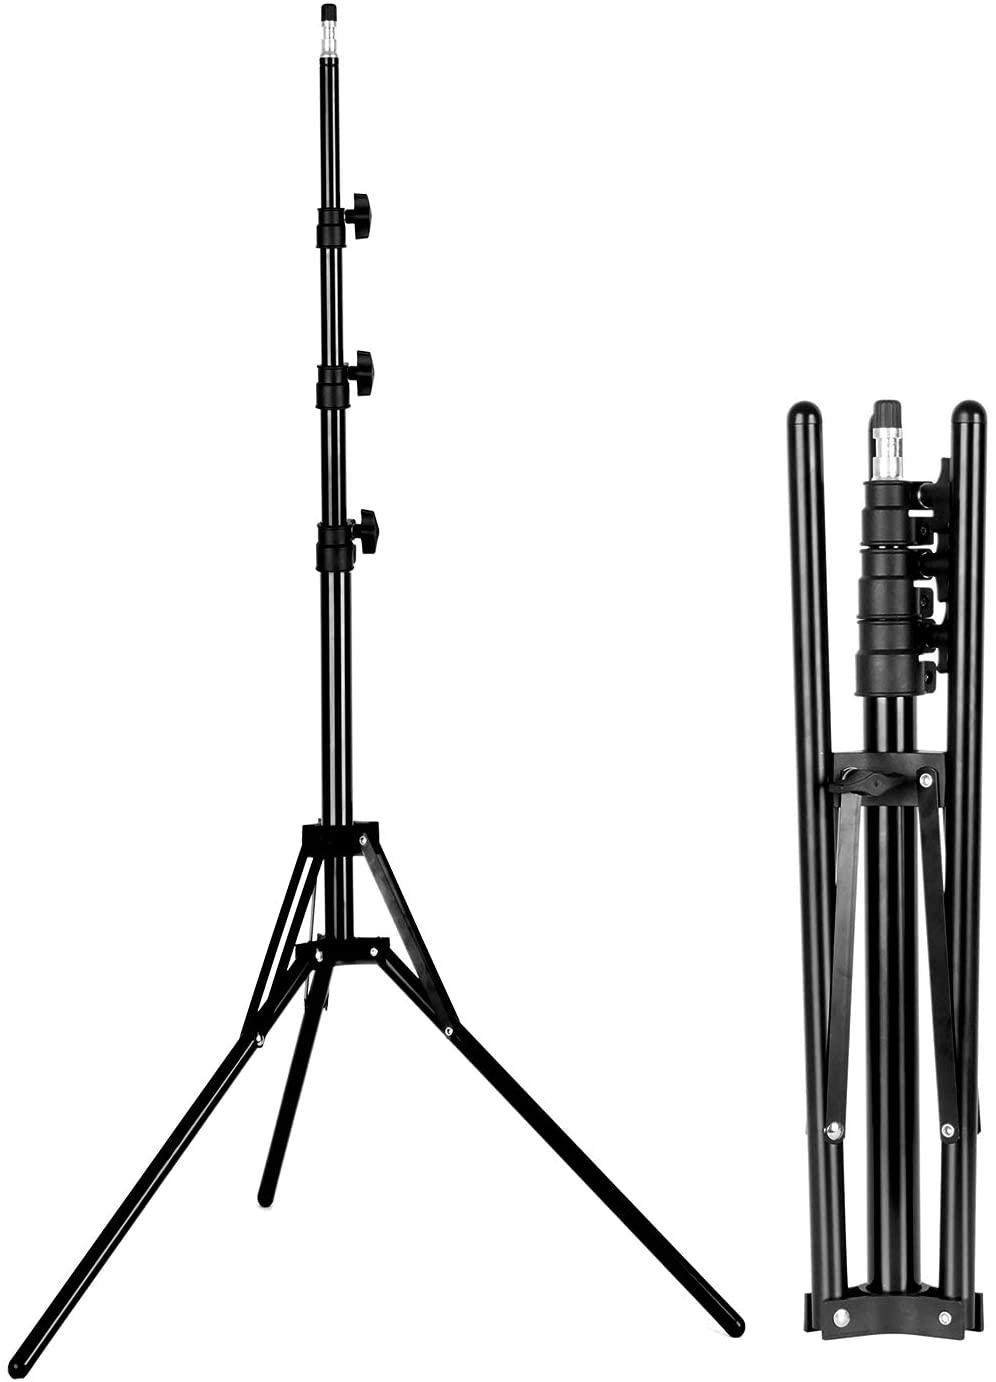 Tripod Light Stand Photography Fold Portable Lightweight 200cm/6ft Photo Studio For Flash Reflector Softbox Umbrella Video Shoot